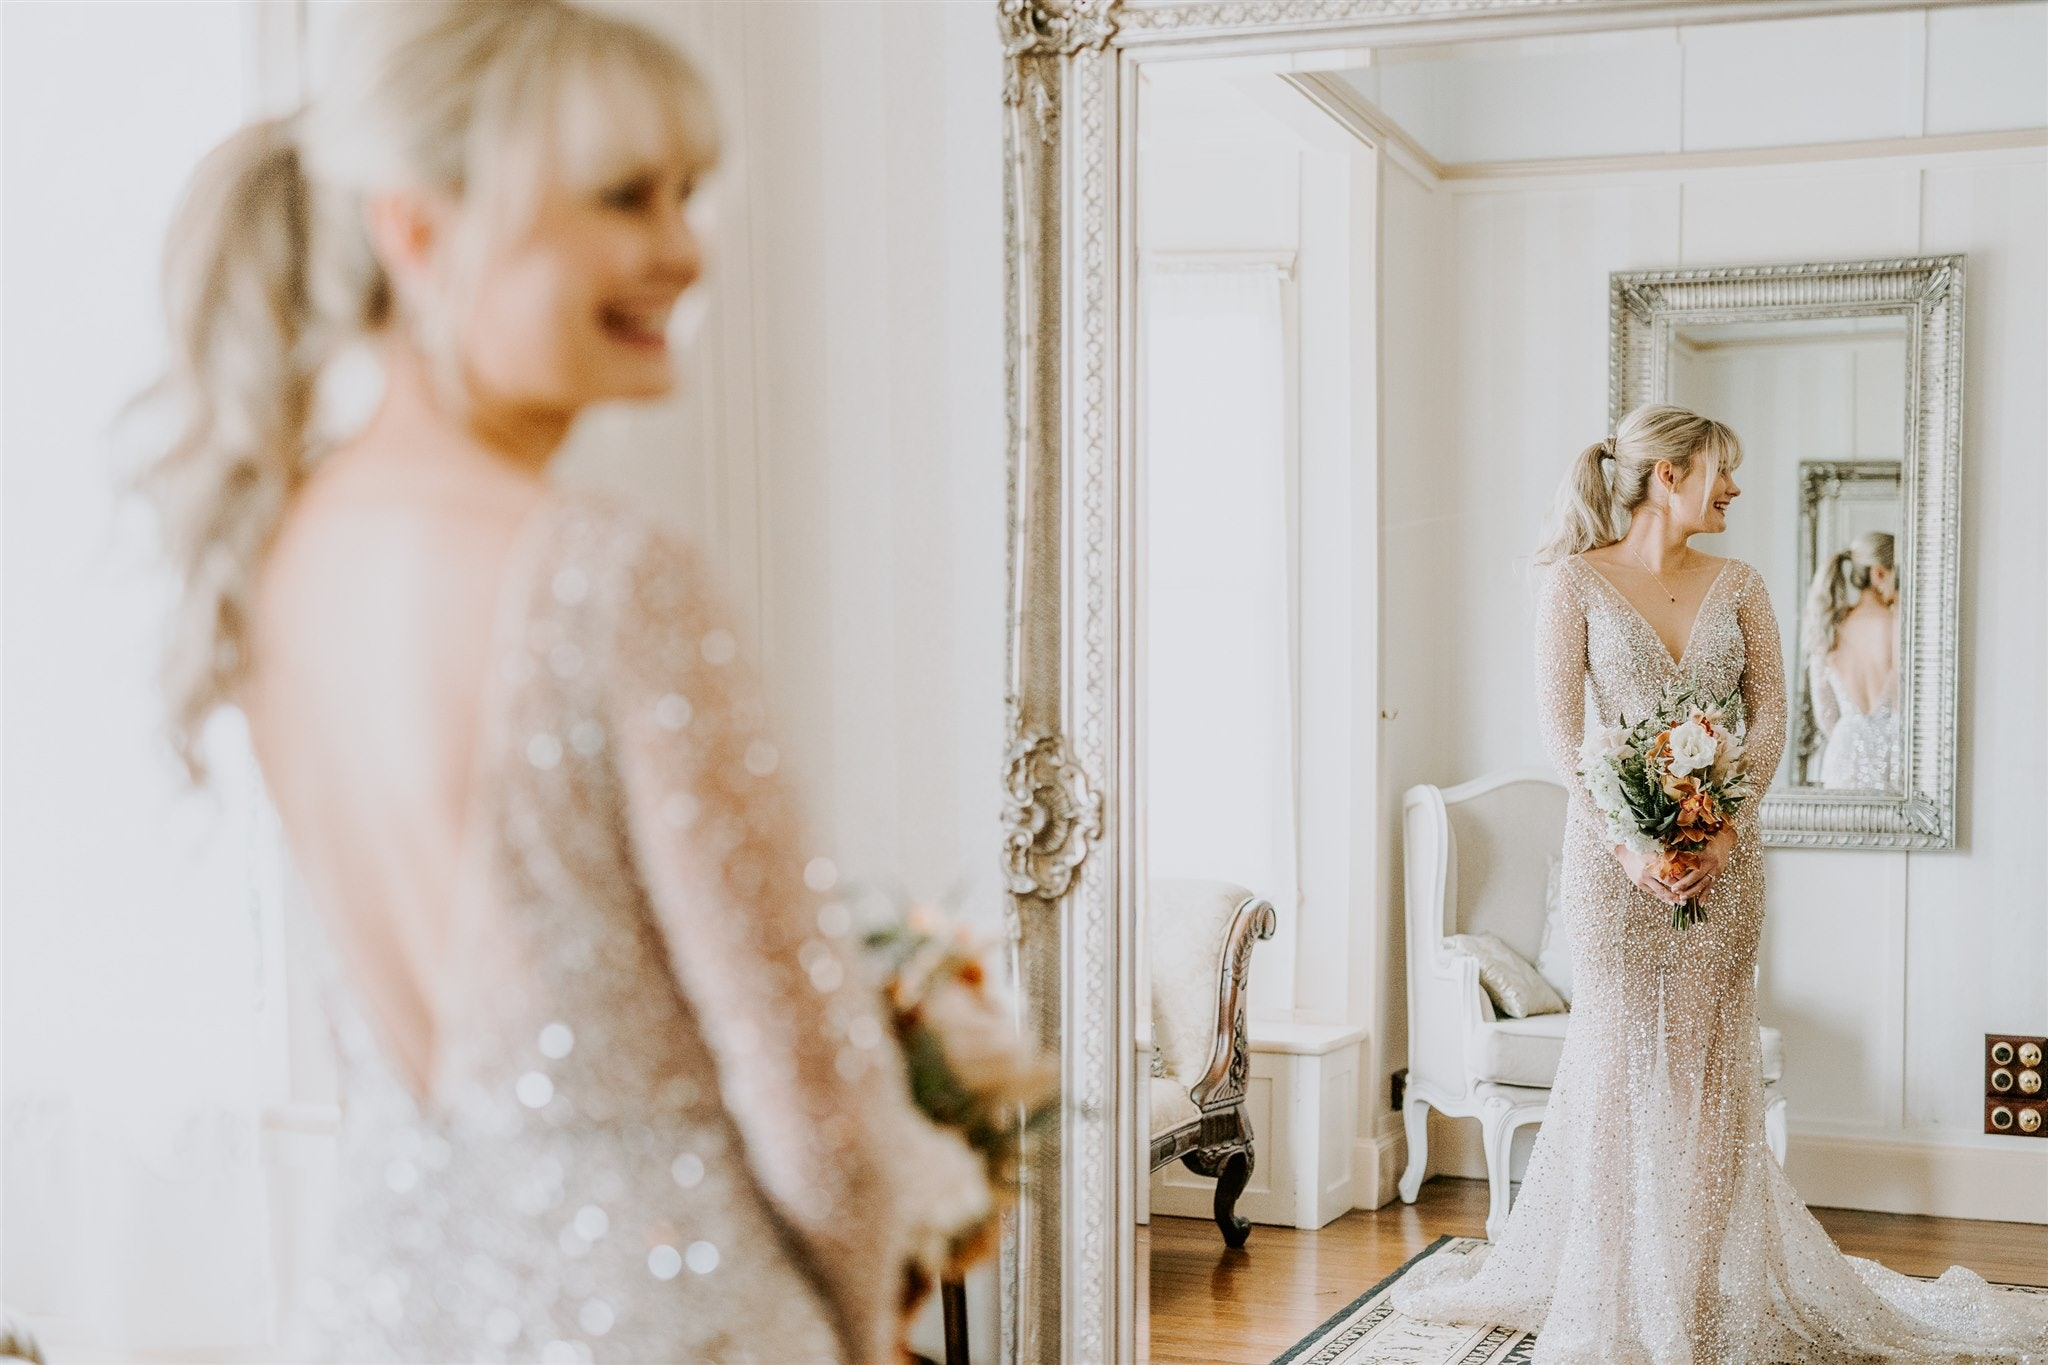 Bride in sequin wedding gown looks into ornate mirror